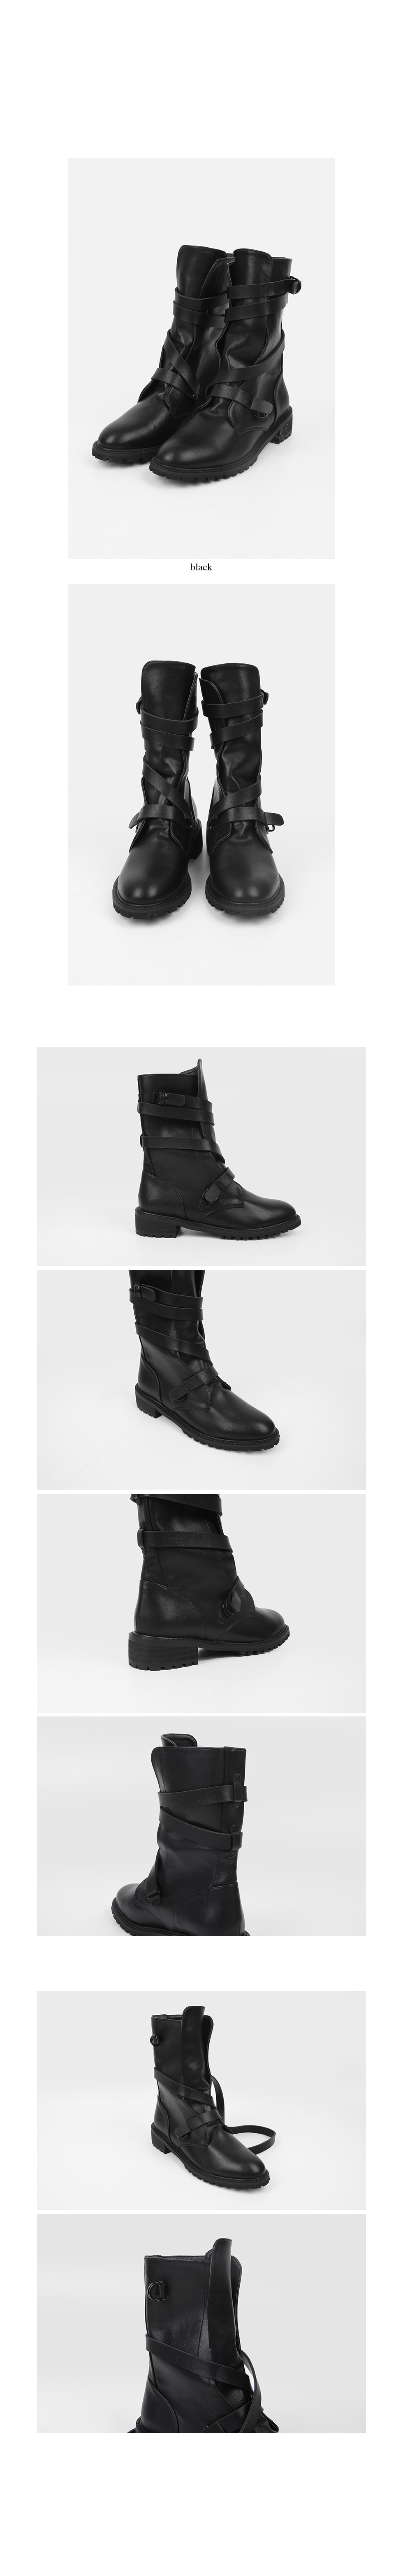 sensual strap midlle boots